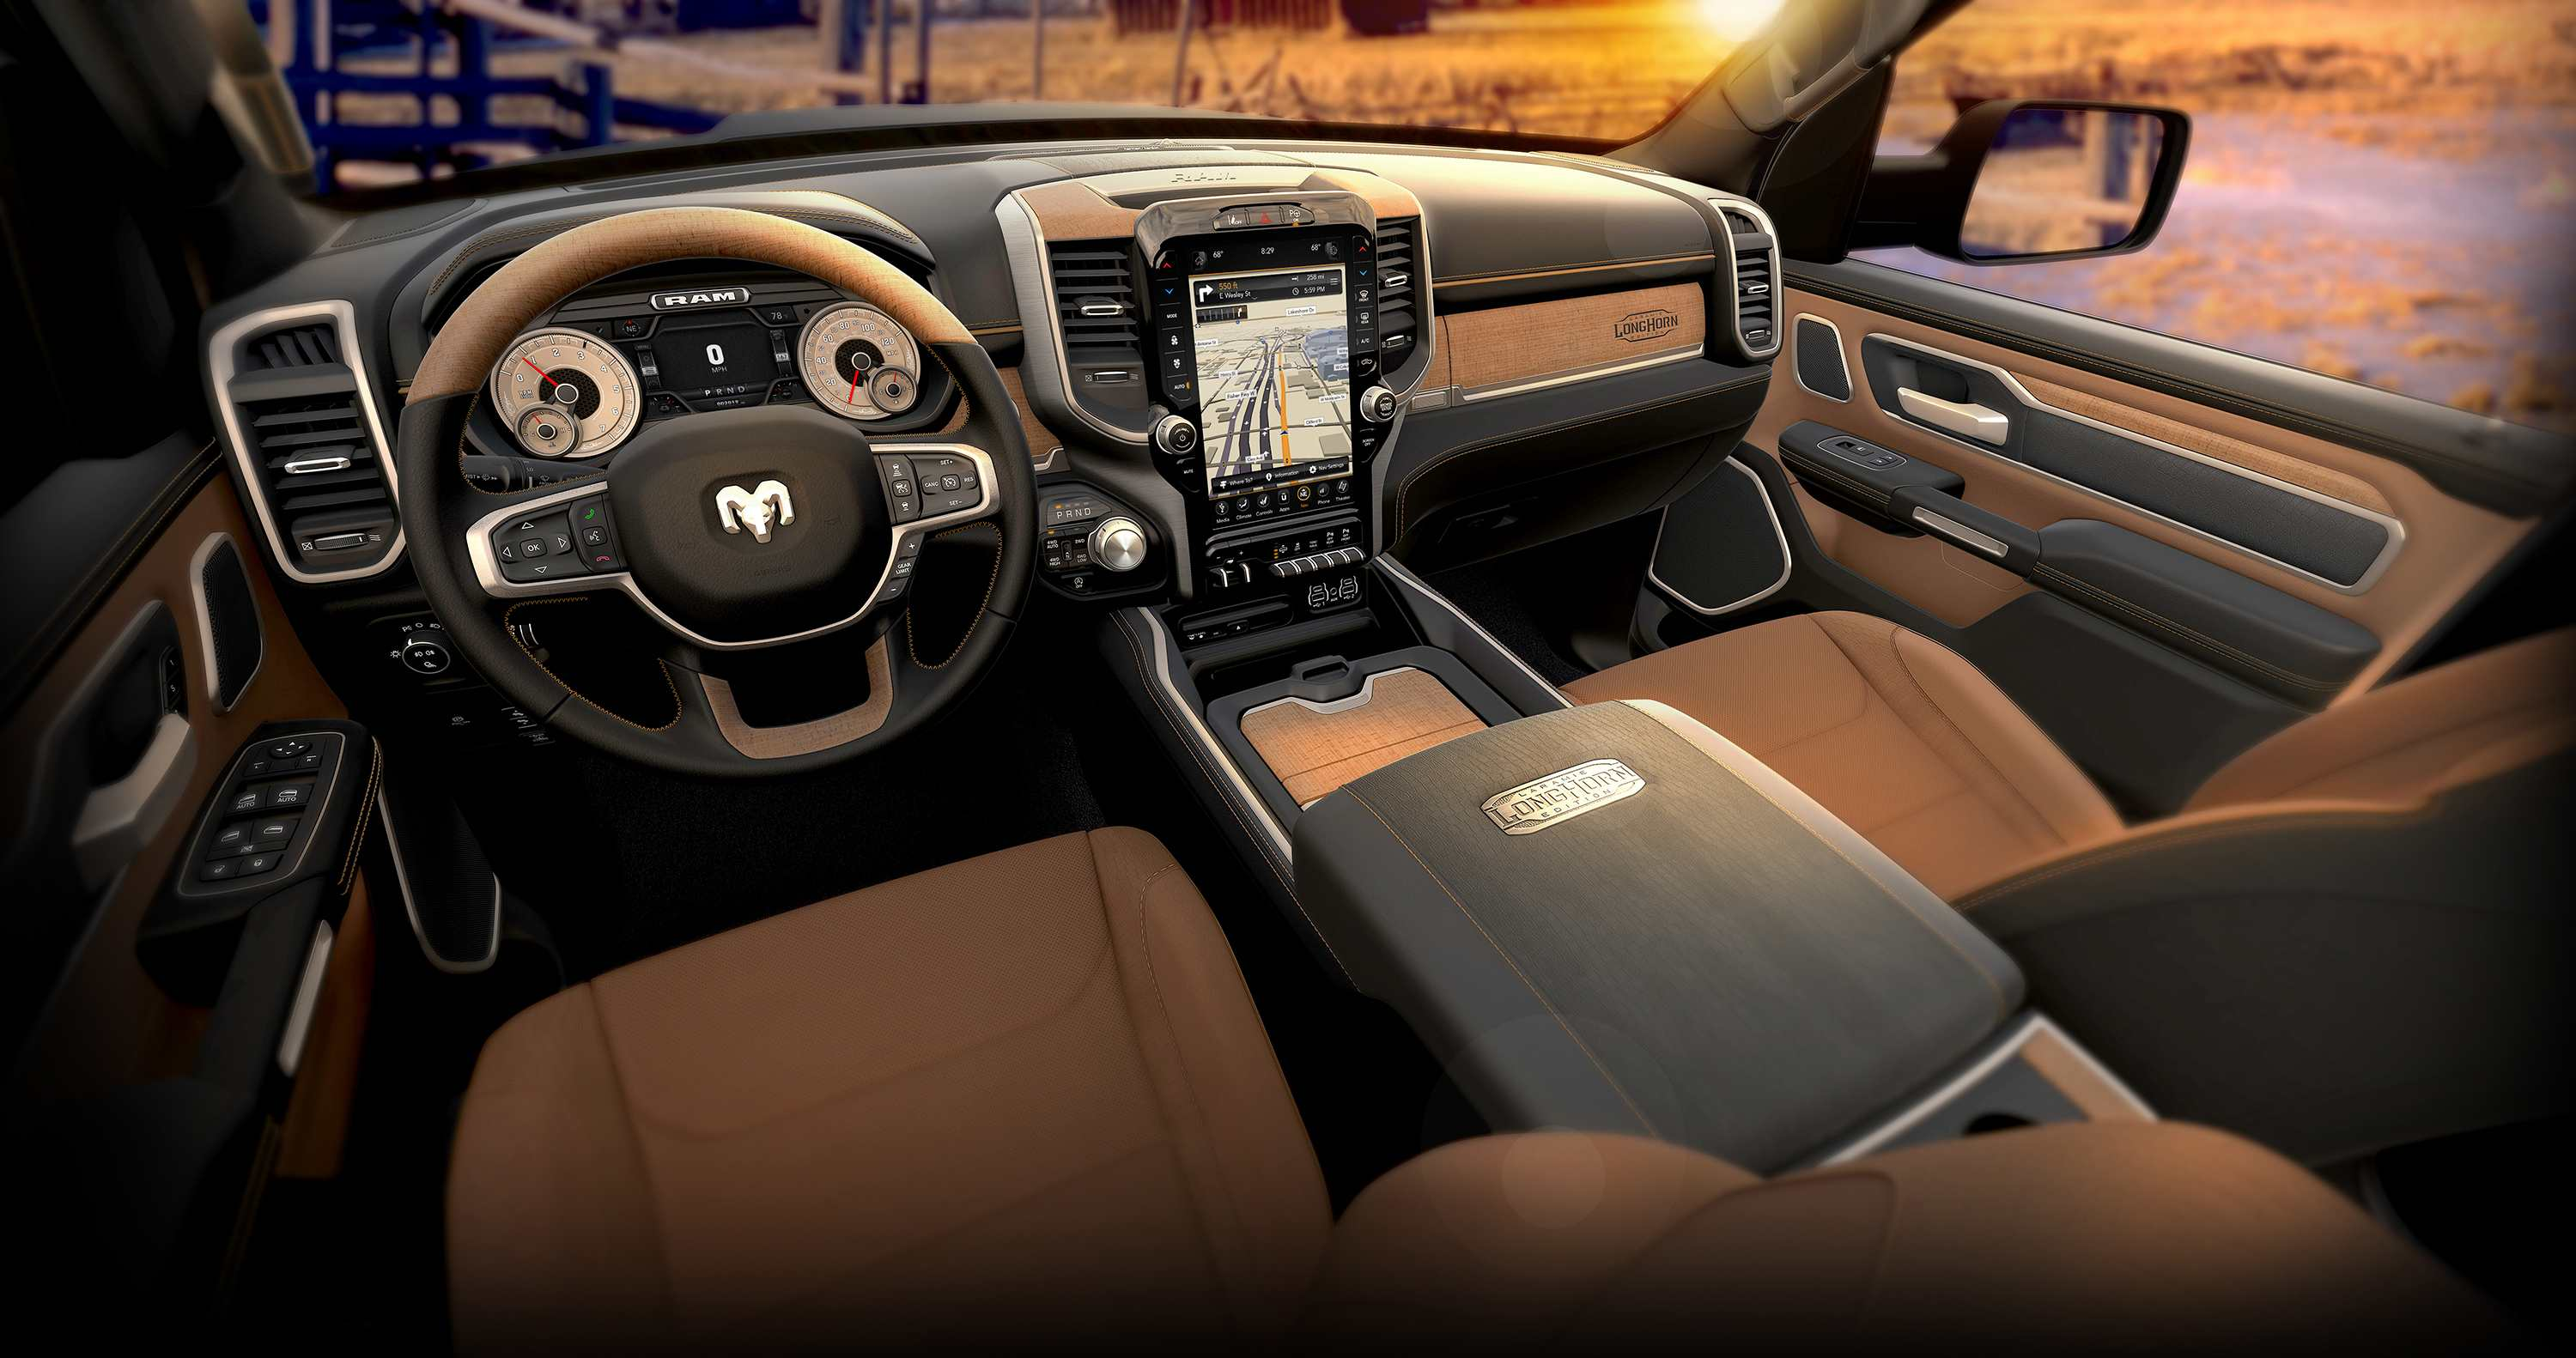 46 Best Review 2019 Dodge Ram Interior Redesign Release Date for 2019 Dodge Ram Interior Redesign